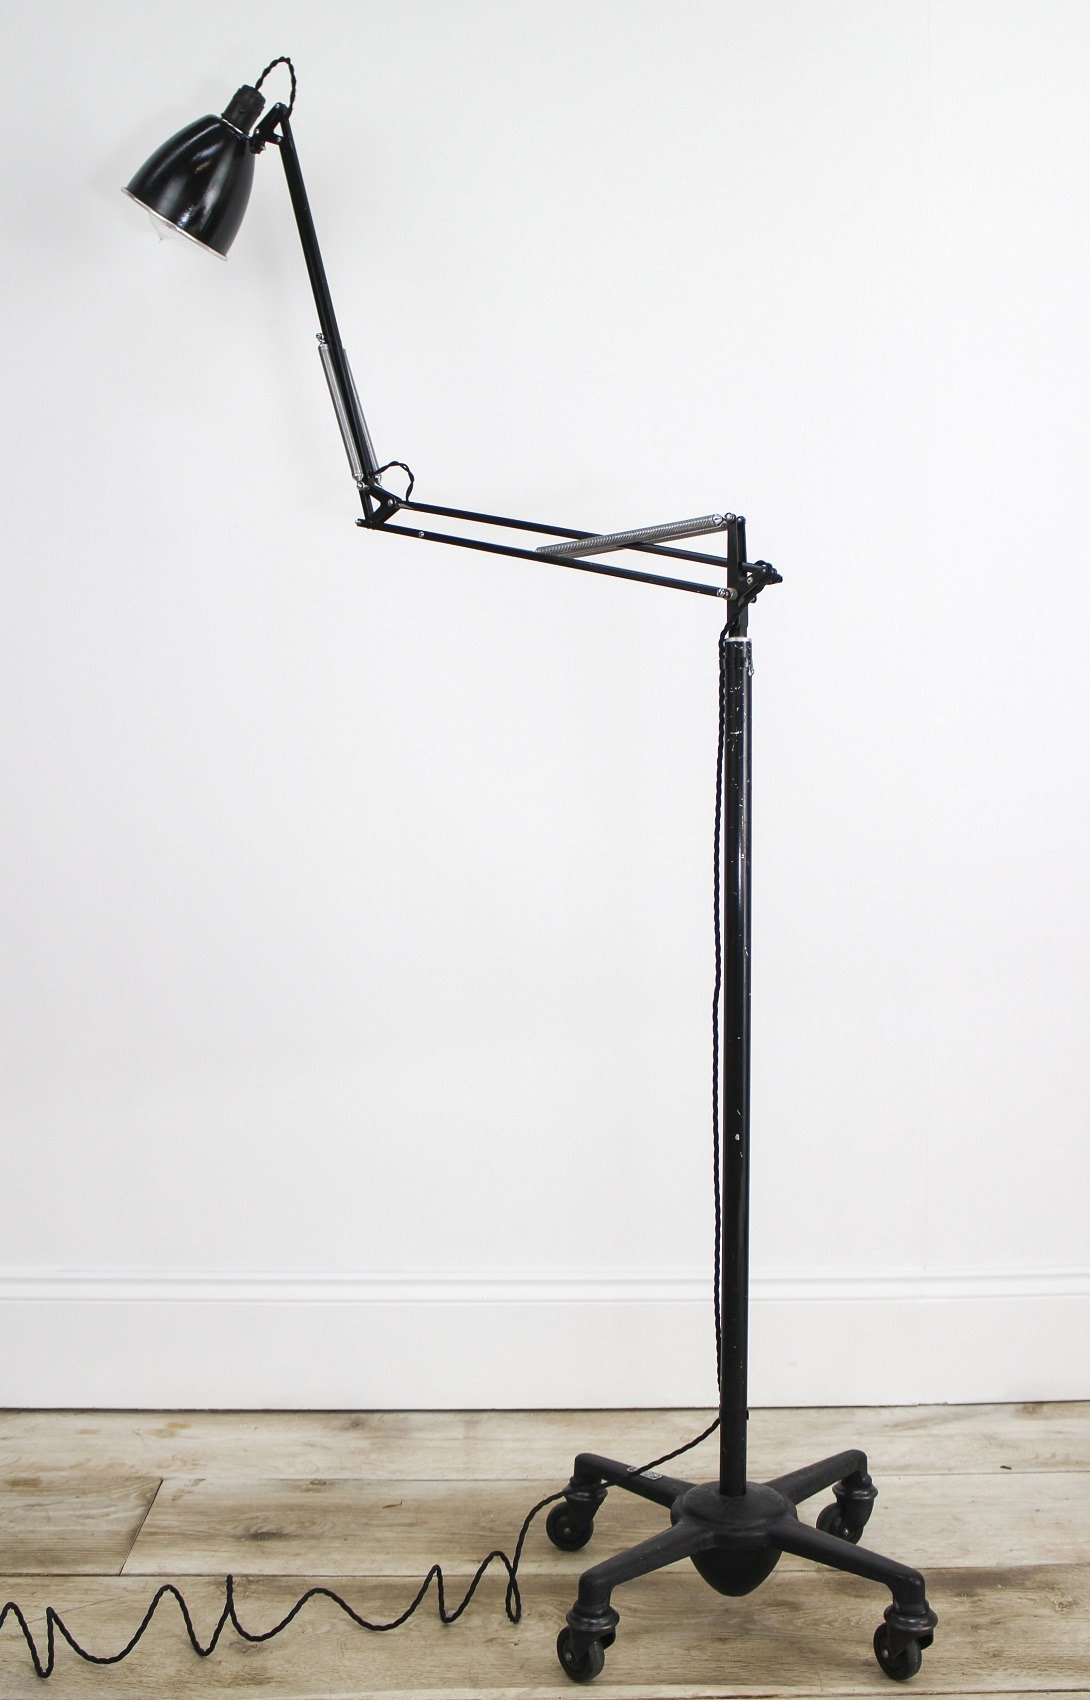 FLOOR STANDING TROLLEY ANGLEPOISE LAMP – Cooling & Cooling